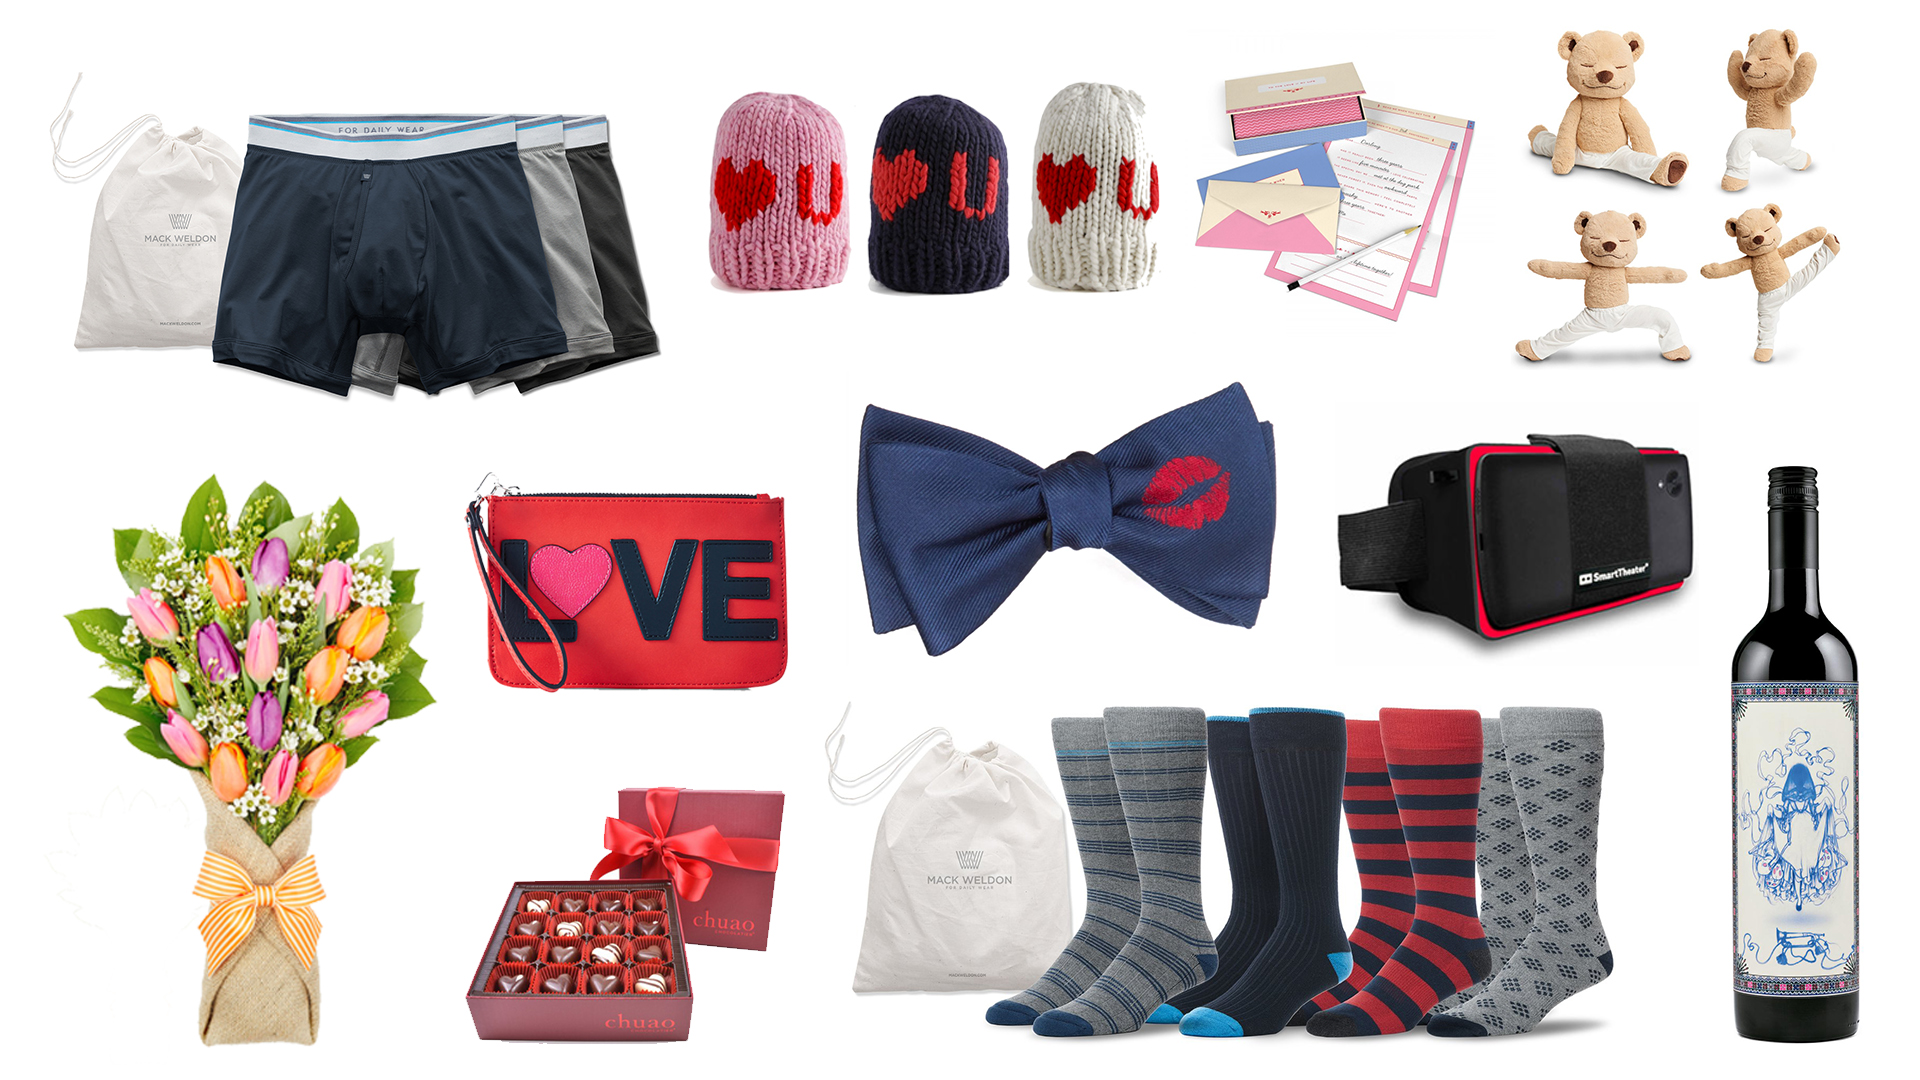 Valentines day ideas for guy you just started dating